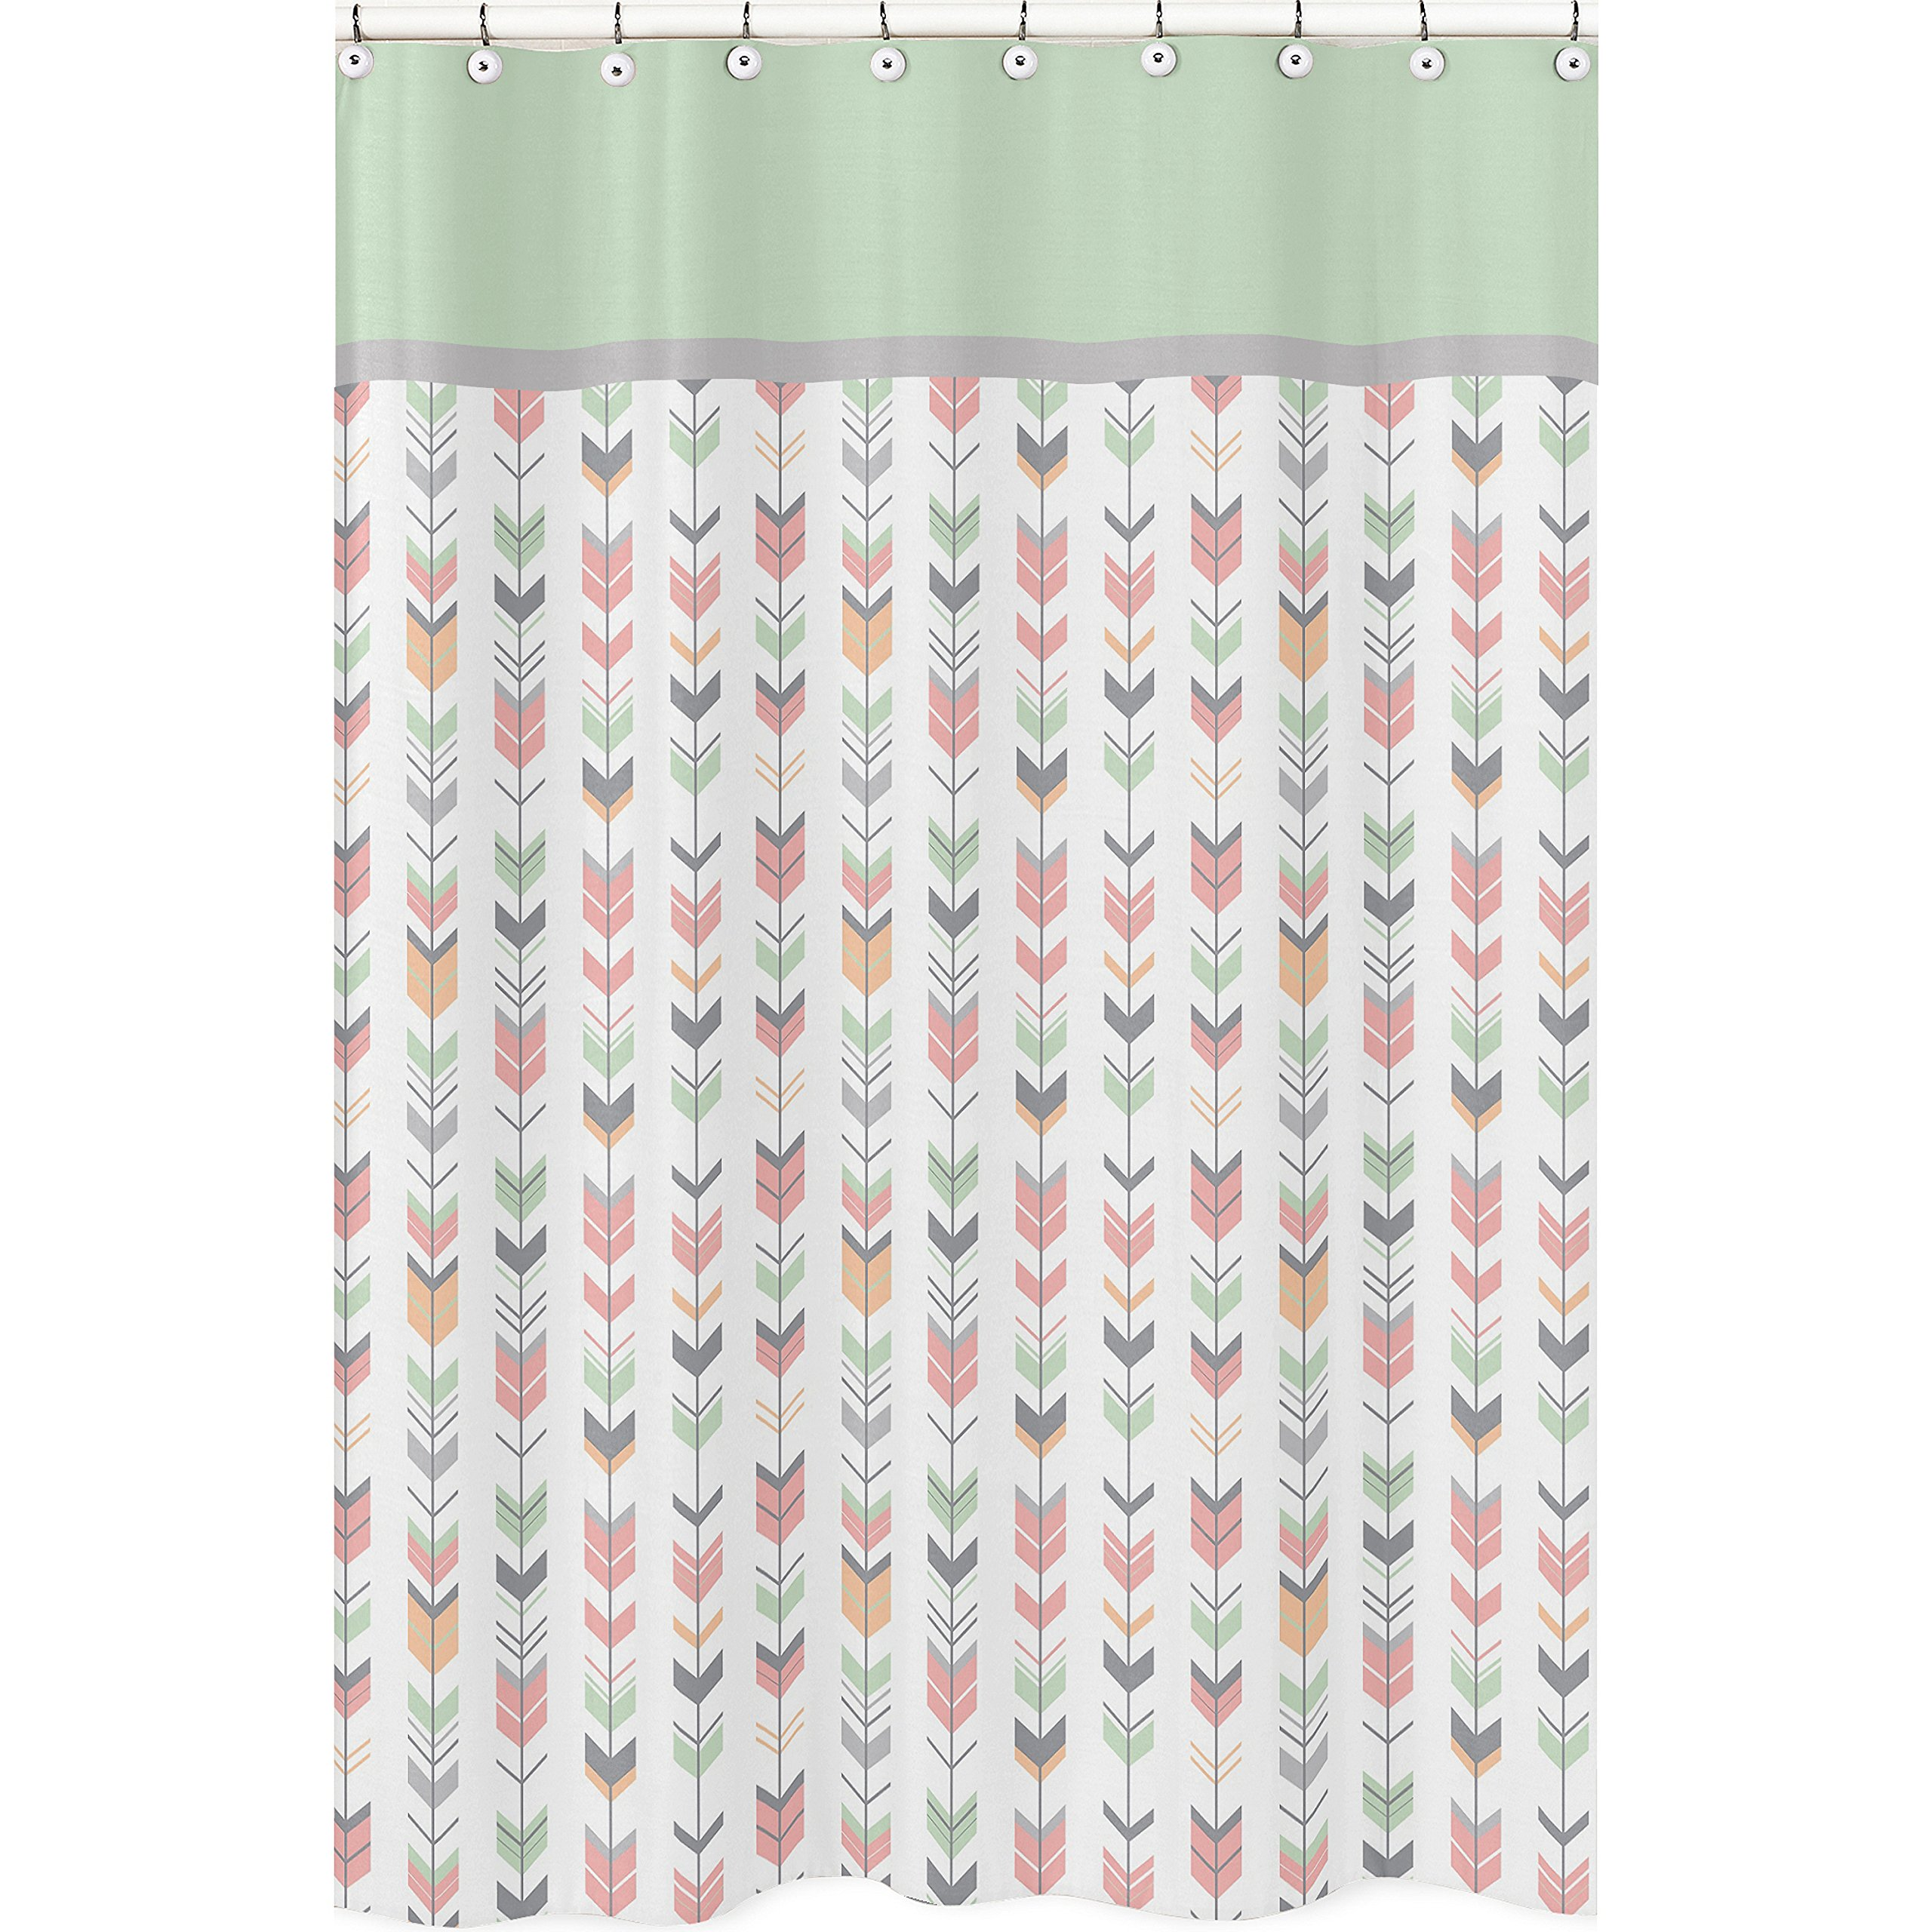 Sweet Jojo Designs Grey, Coral and Mint Woodland Arrow Girls Kids Bathroom Fabric Bath Shower Curtain